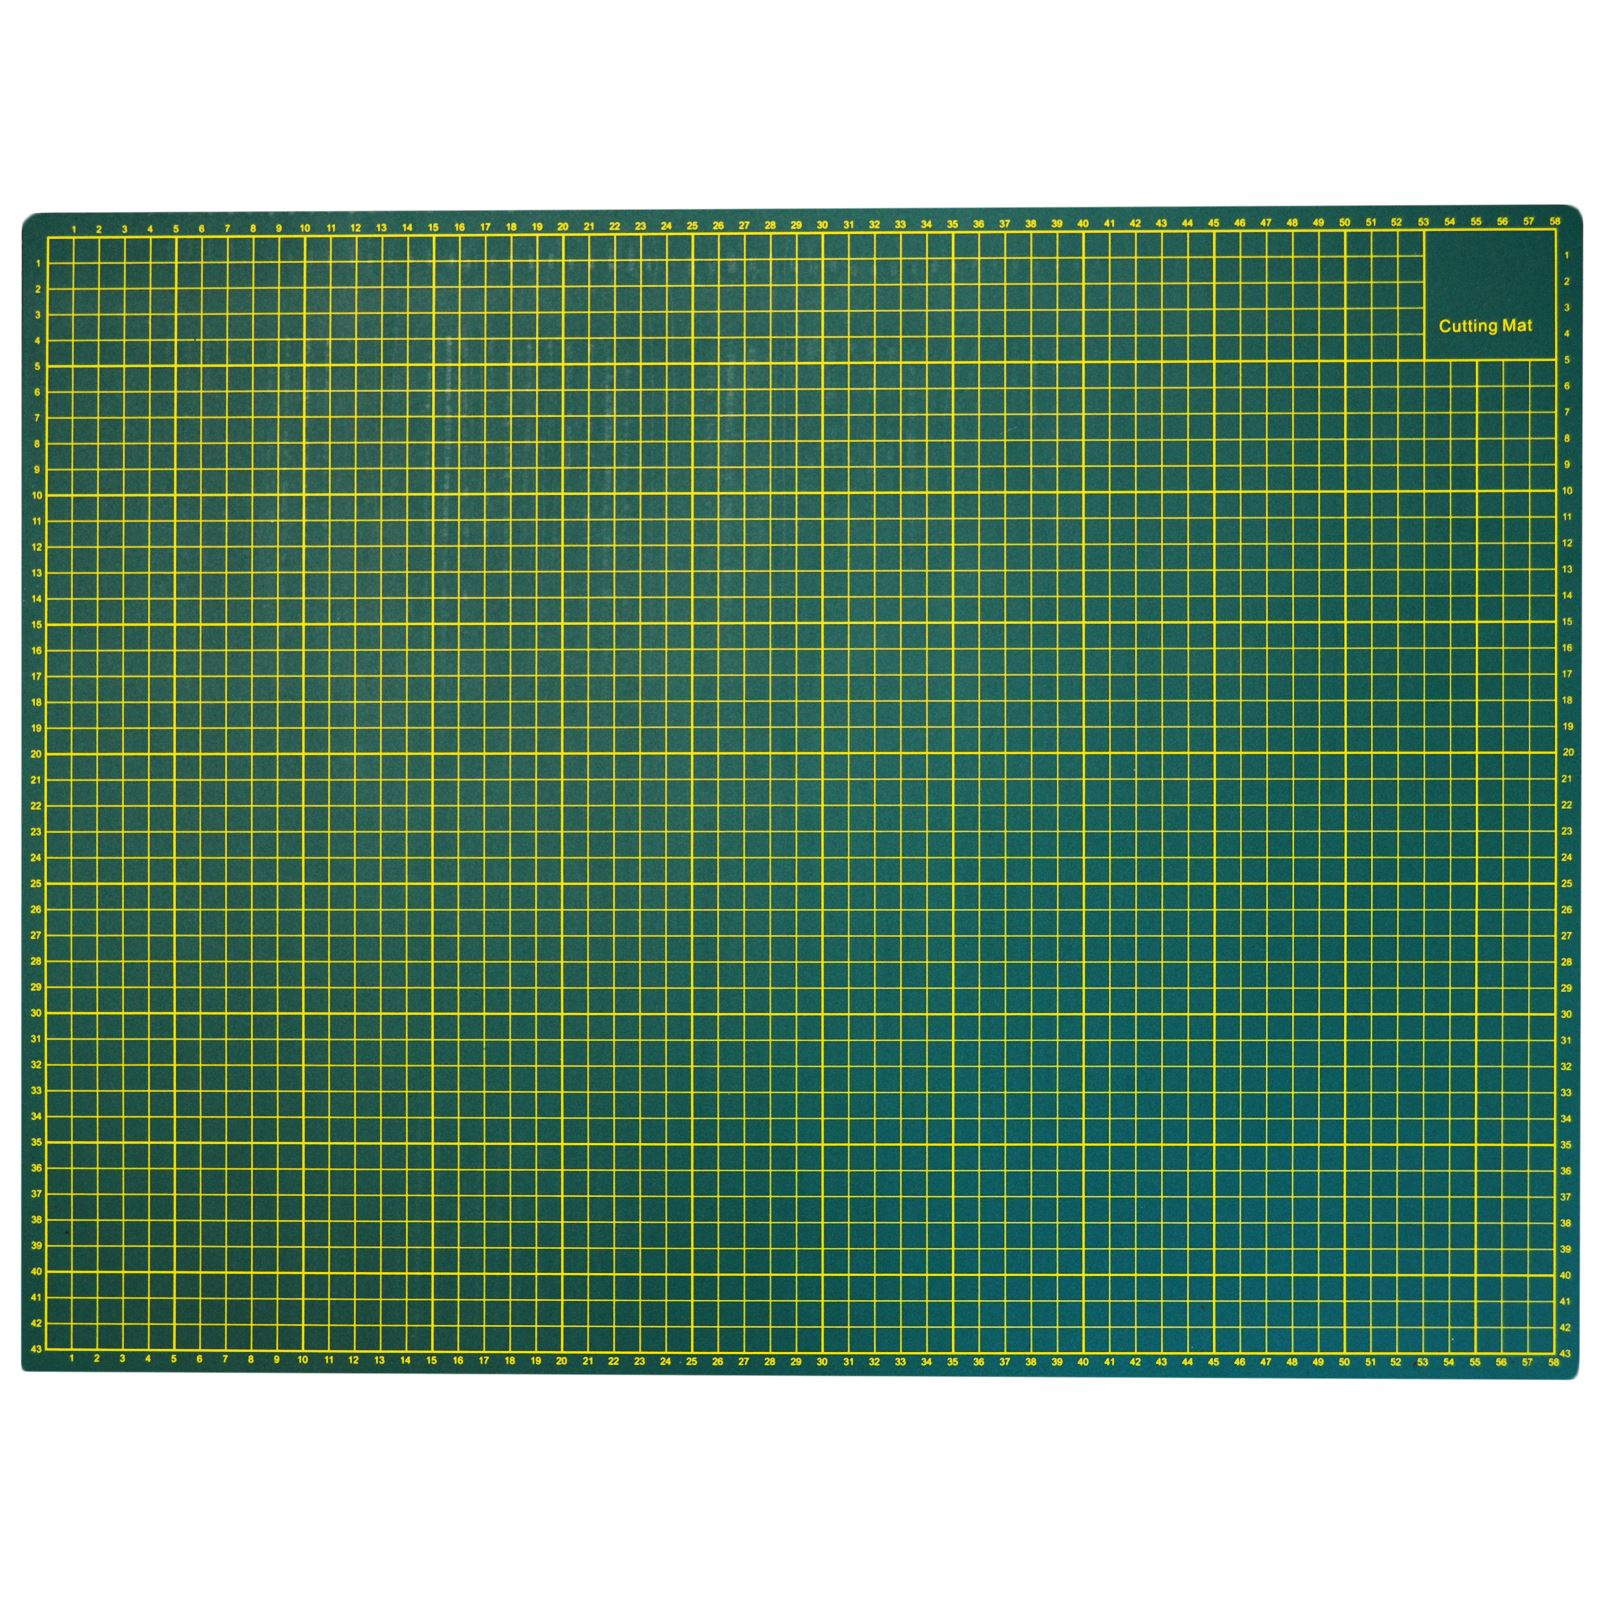 A2 / A3 / A4 Cutting Mat Non Slip Printed Grid Lines Knife Board Crafts Models